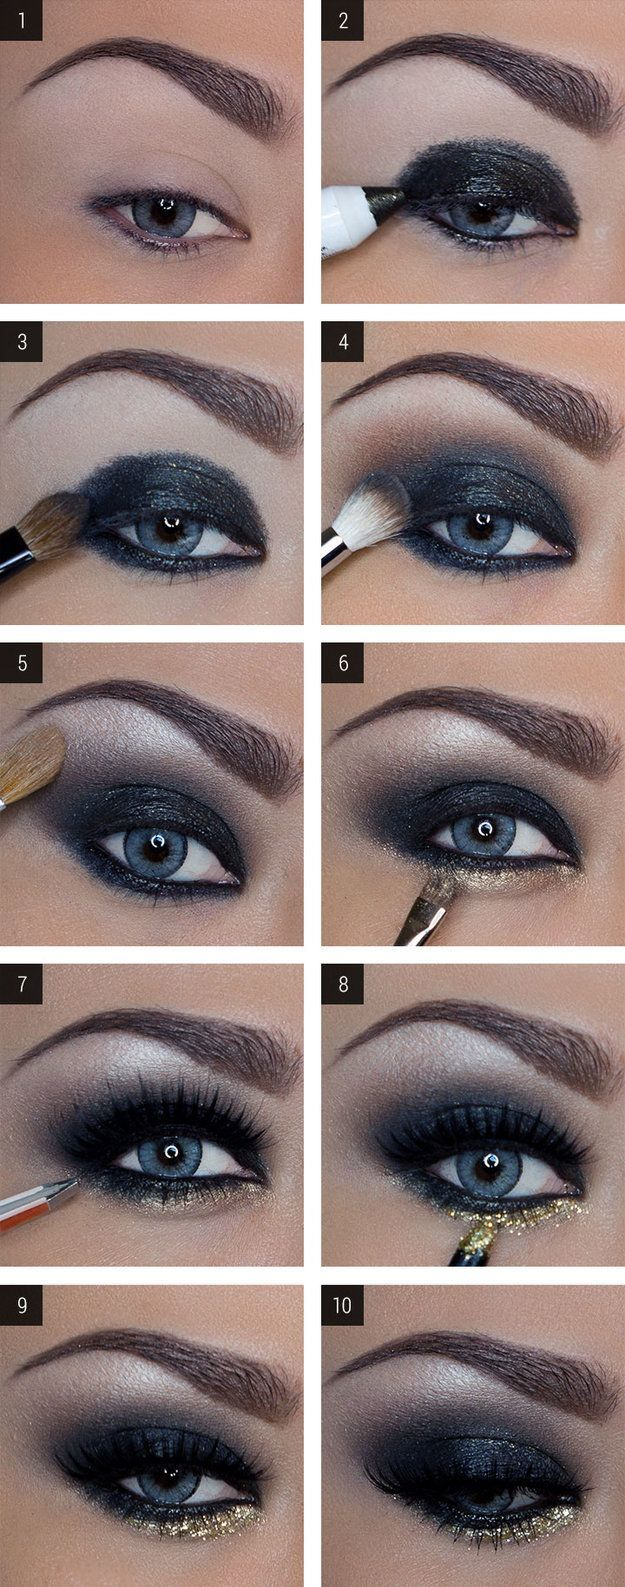 How to Do Dramatic Smokey Eyes | Makeup for Blue Eye by Makeup Tutorials at www....